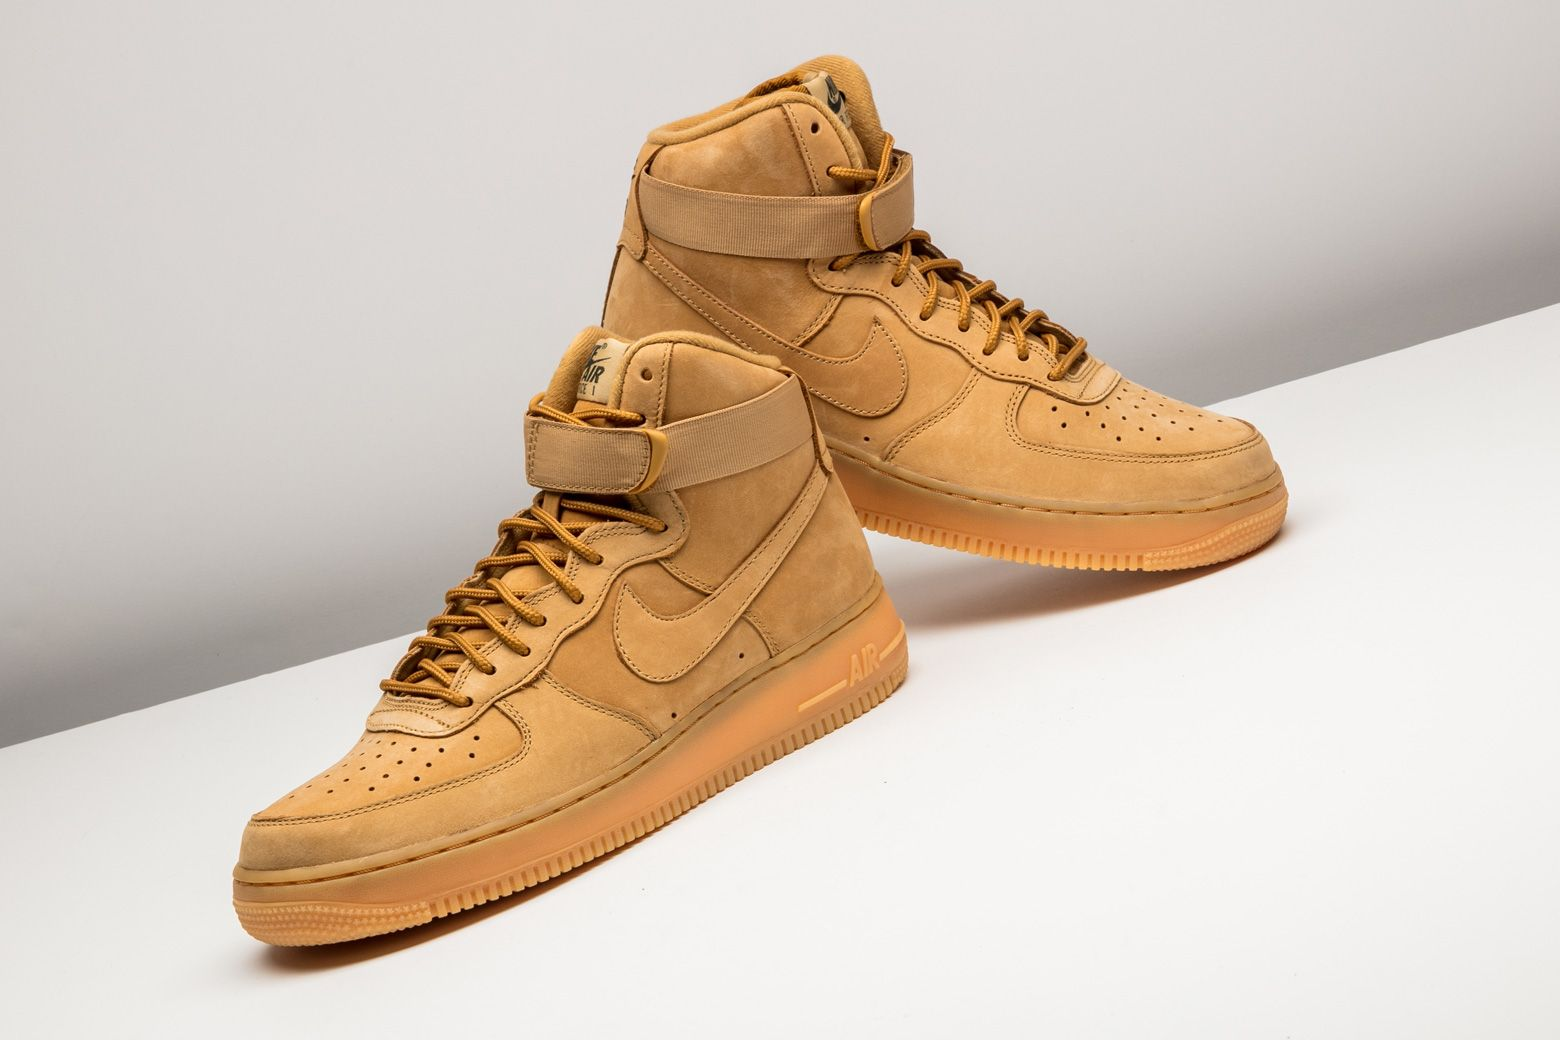 Nike Air Force 1 High '07 LV8 WB - 882096 200